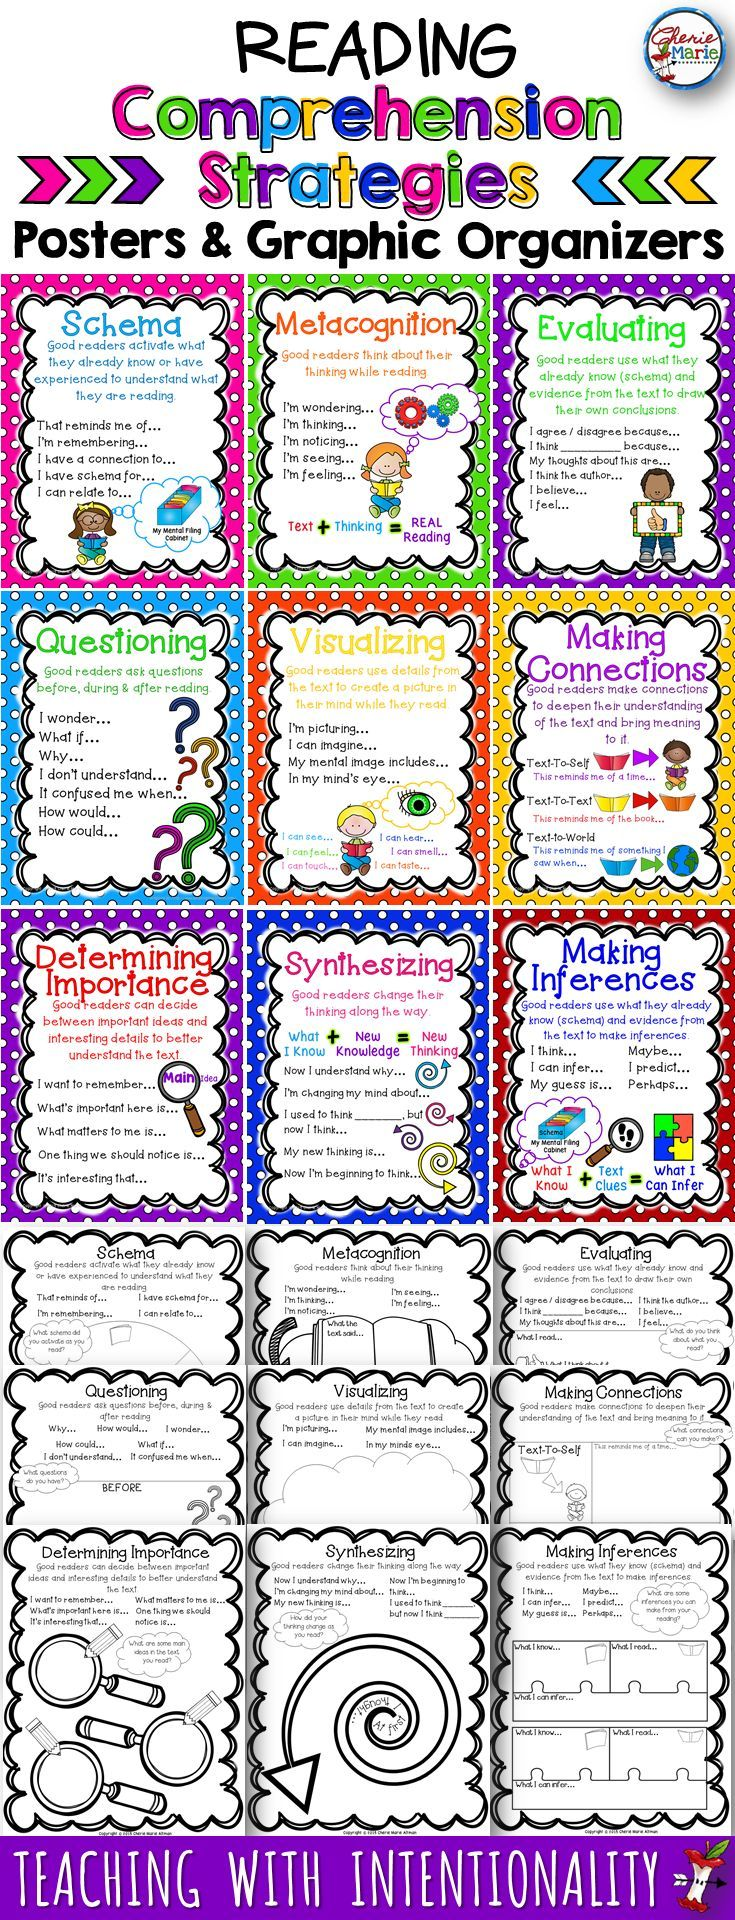 reading comprehension strategies that work Reading comprehension is a series of brain activities that need to take place automatically here are strategies to improve the steps to reading comprehension.